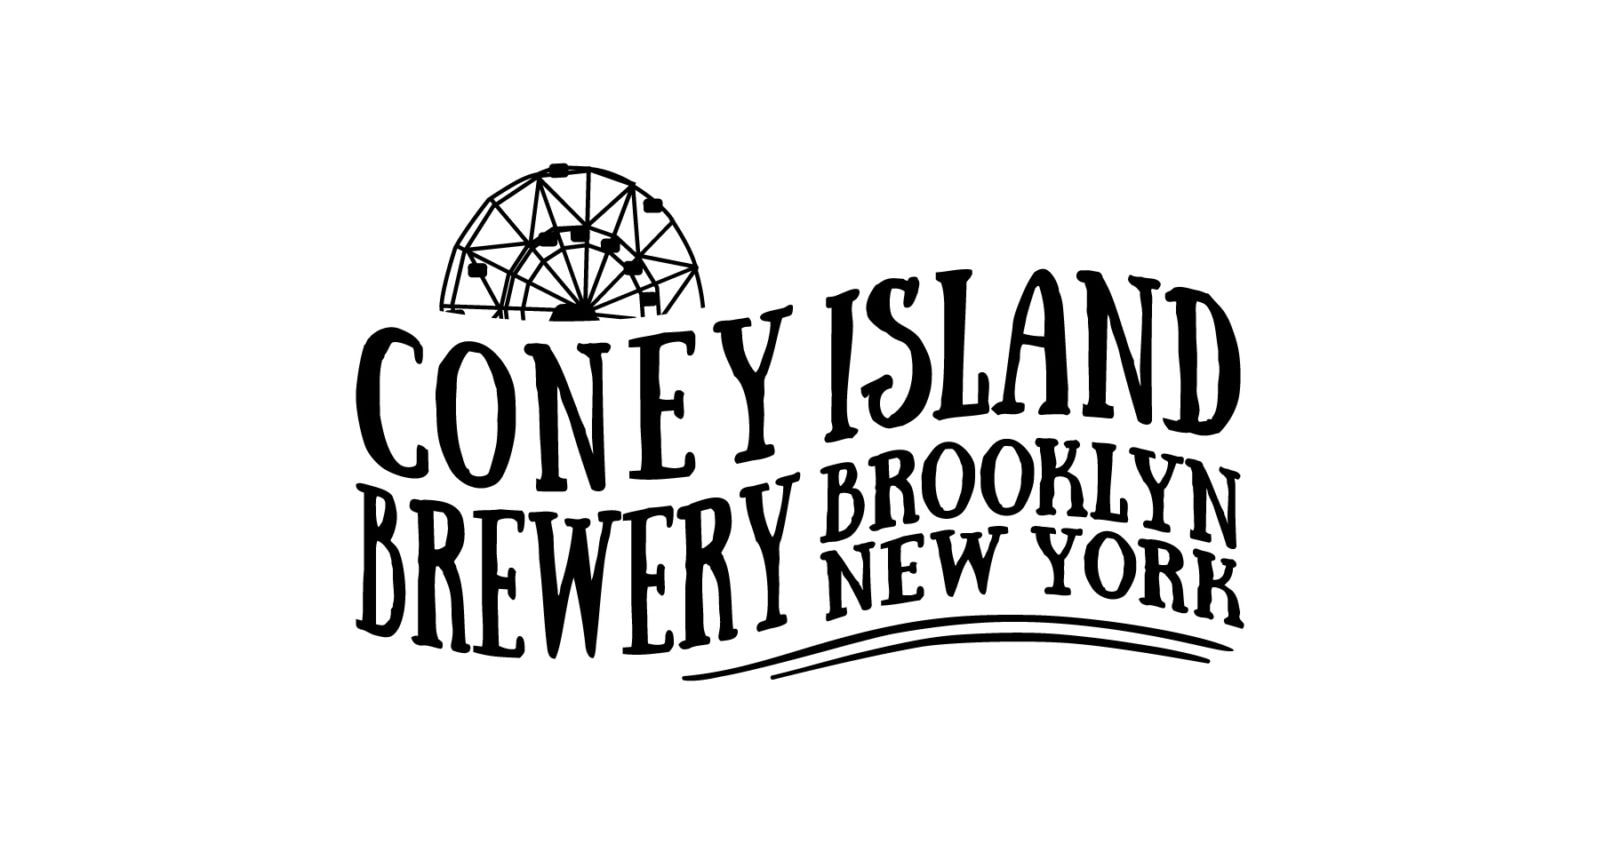 Graphic design for Coney Island Brewery by Clutch Creative Co. Burlington, VT graphic design.